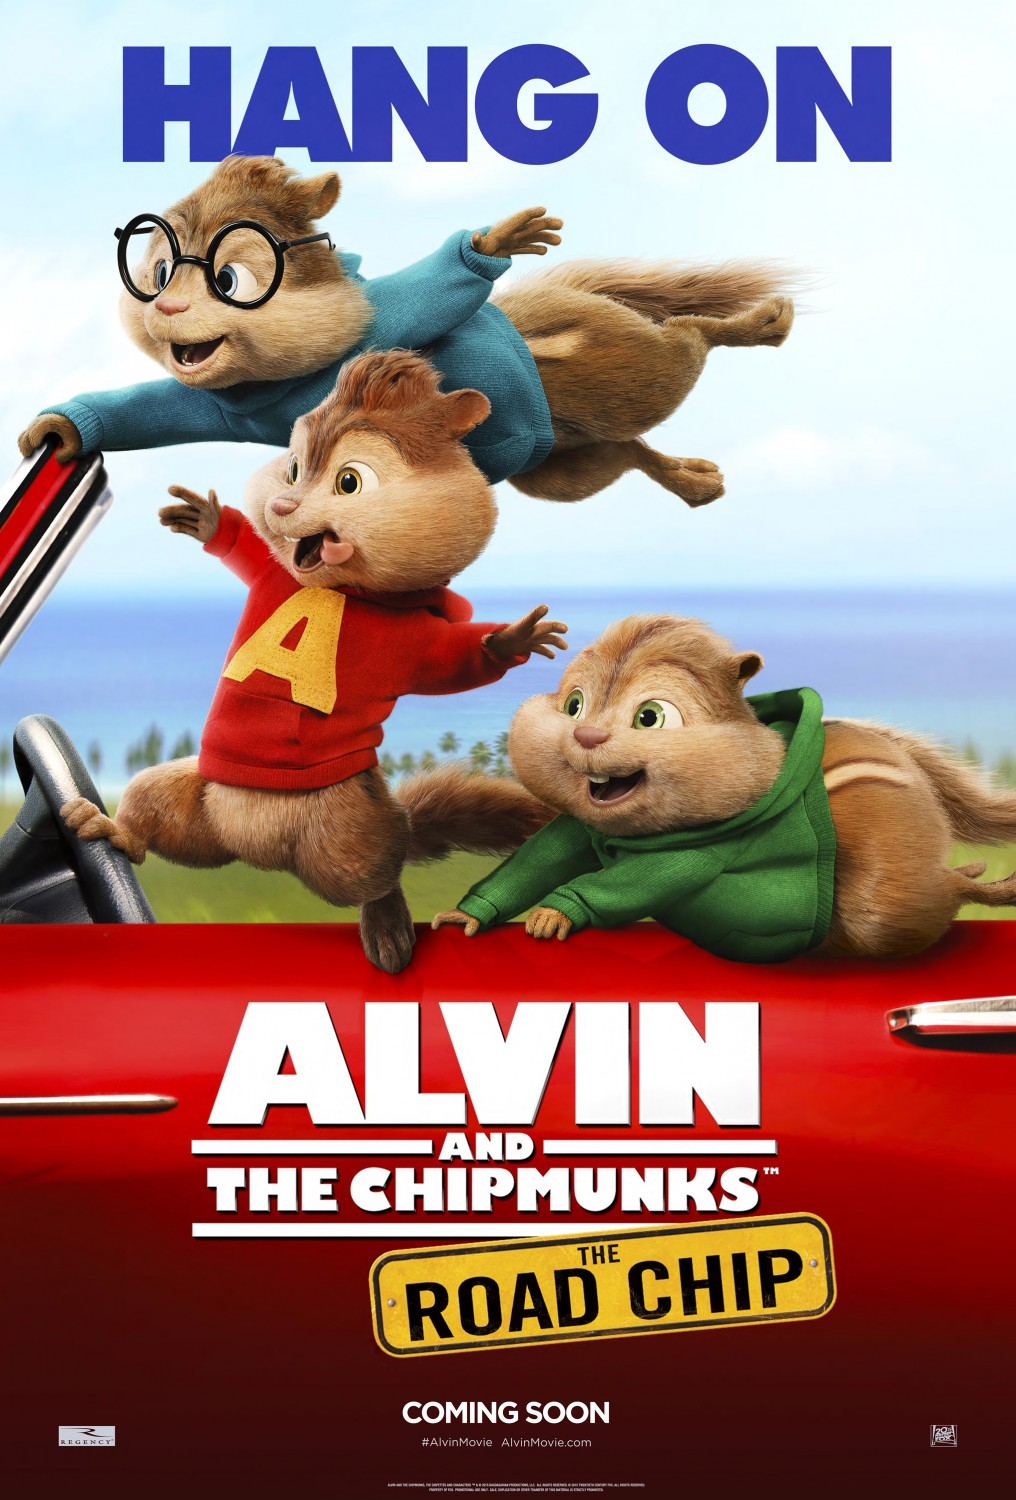 Alvin And The Chipmunks: The Road Chip Review